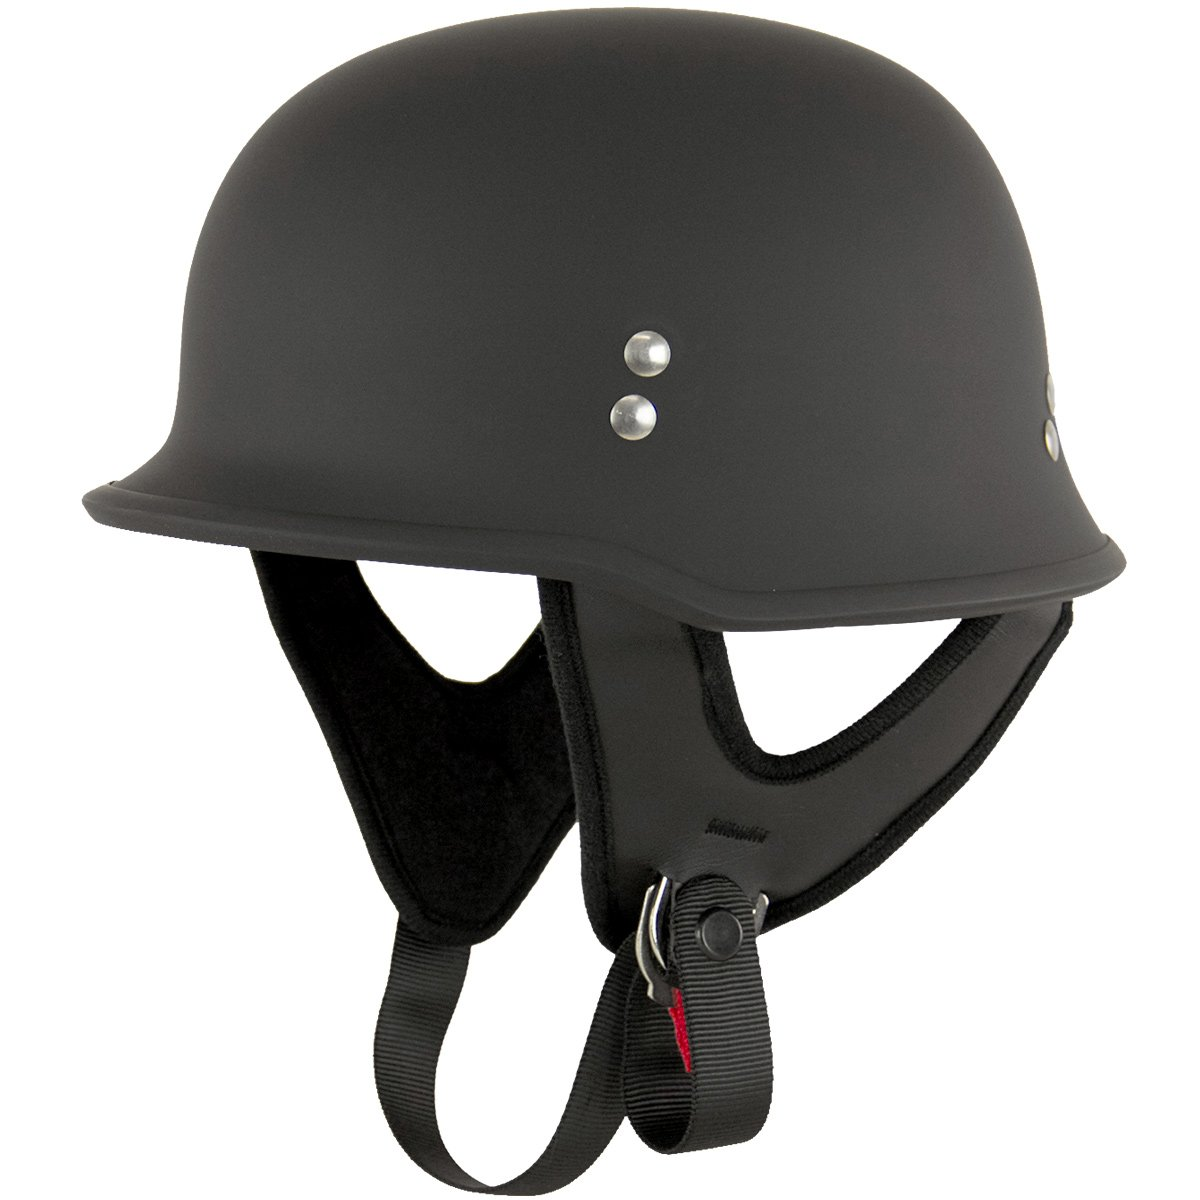 Outlaw T-75 German Style Flat Black Half Helmet - Large by Outlaw